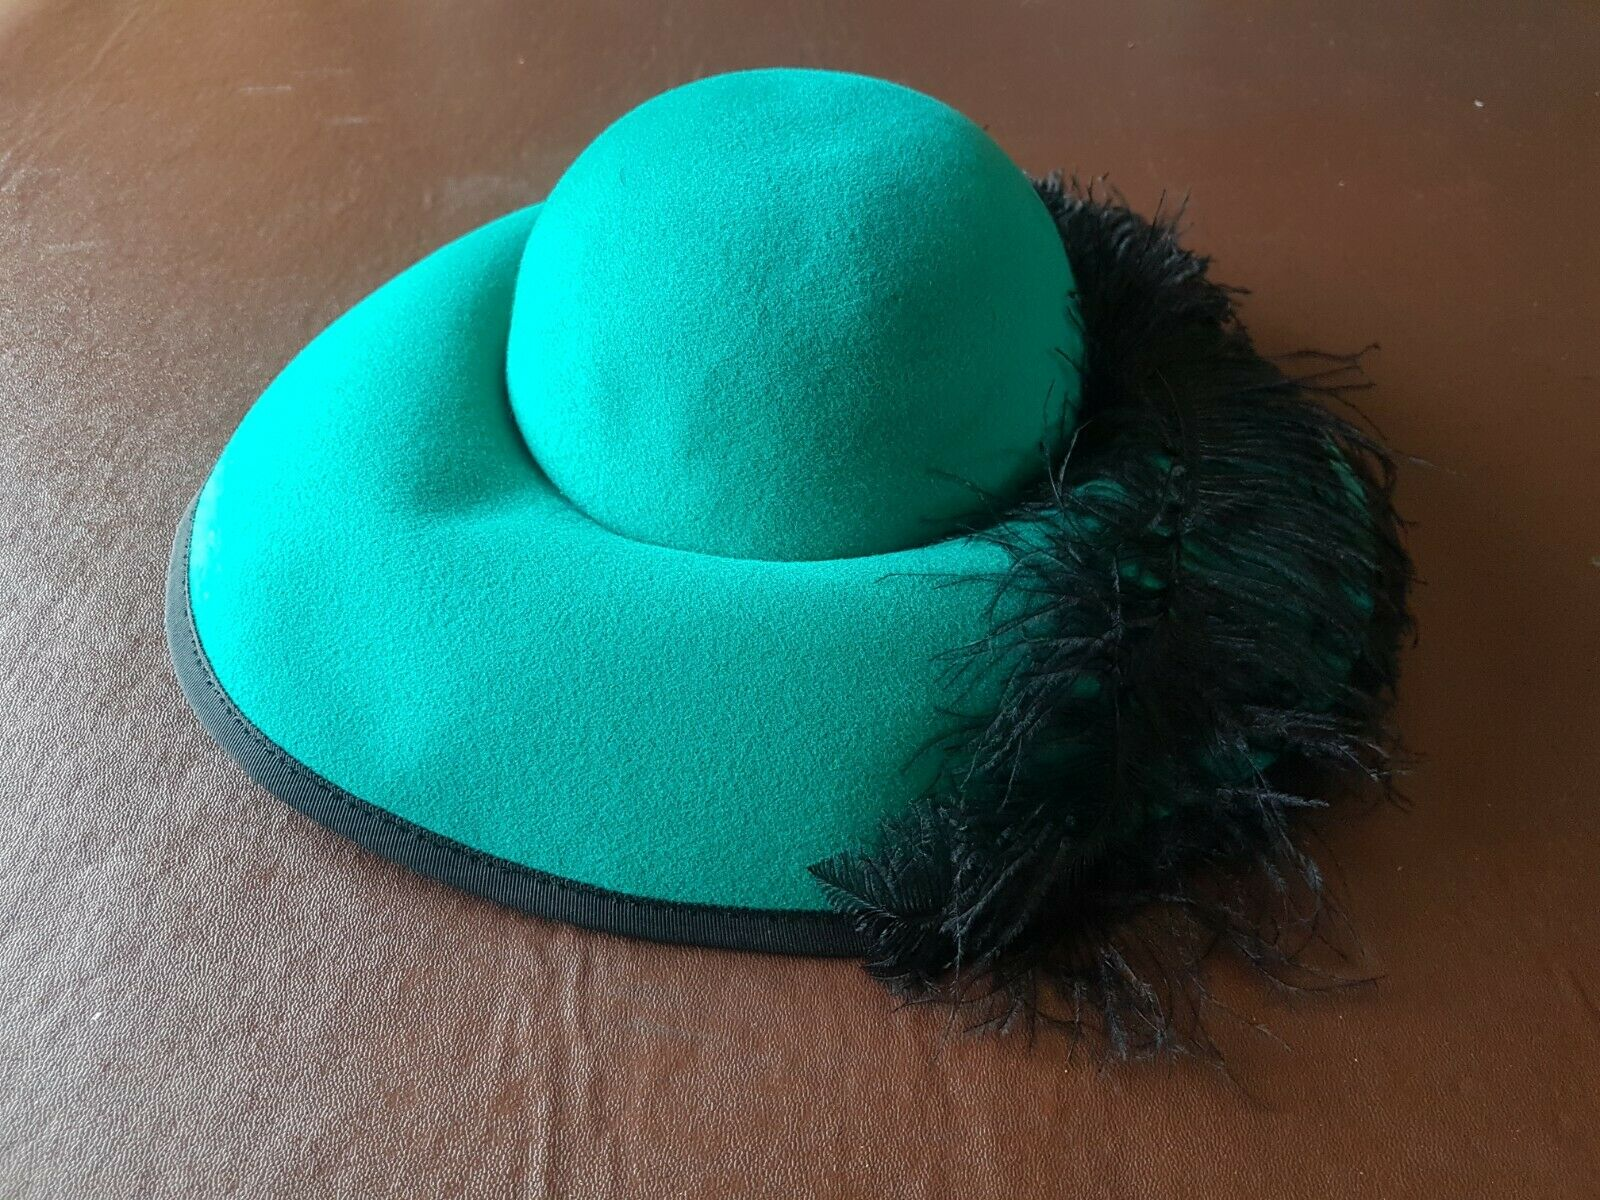 Ladies occasion hat - Ascot/Wedding/Formal - Green with Feather - Principles